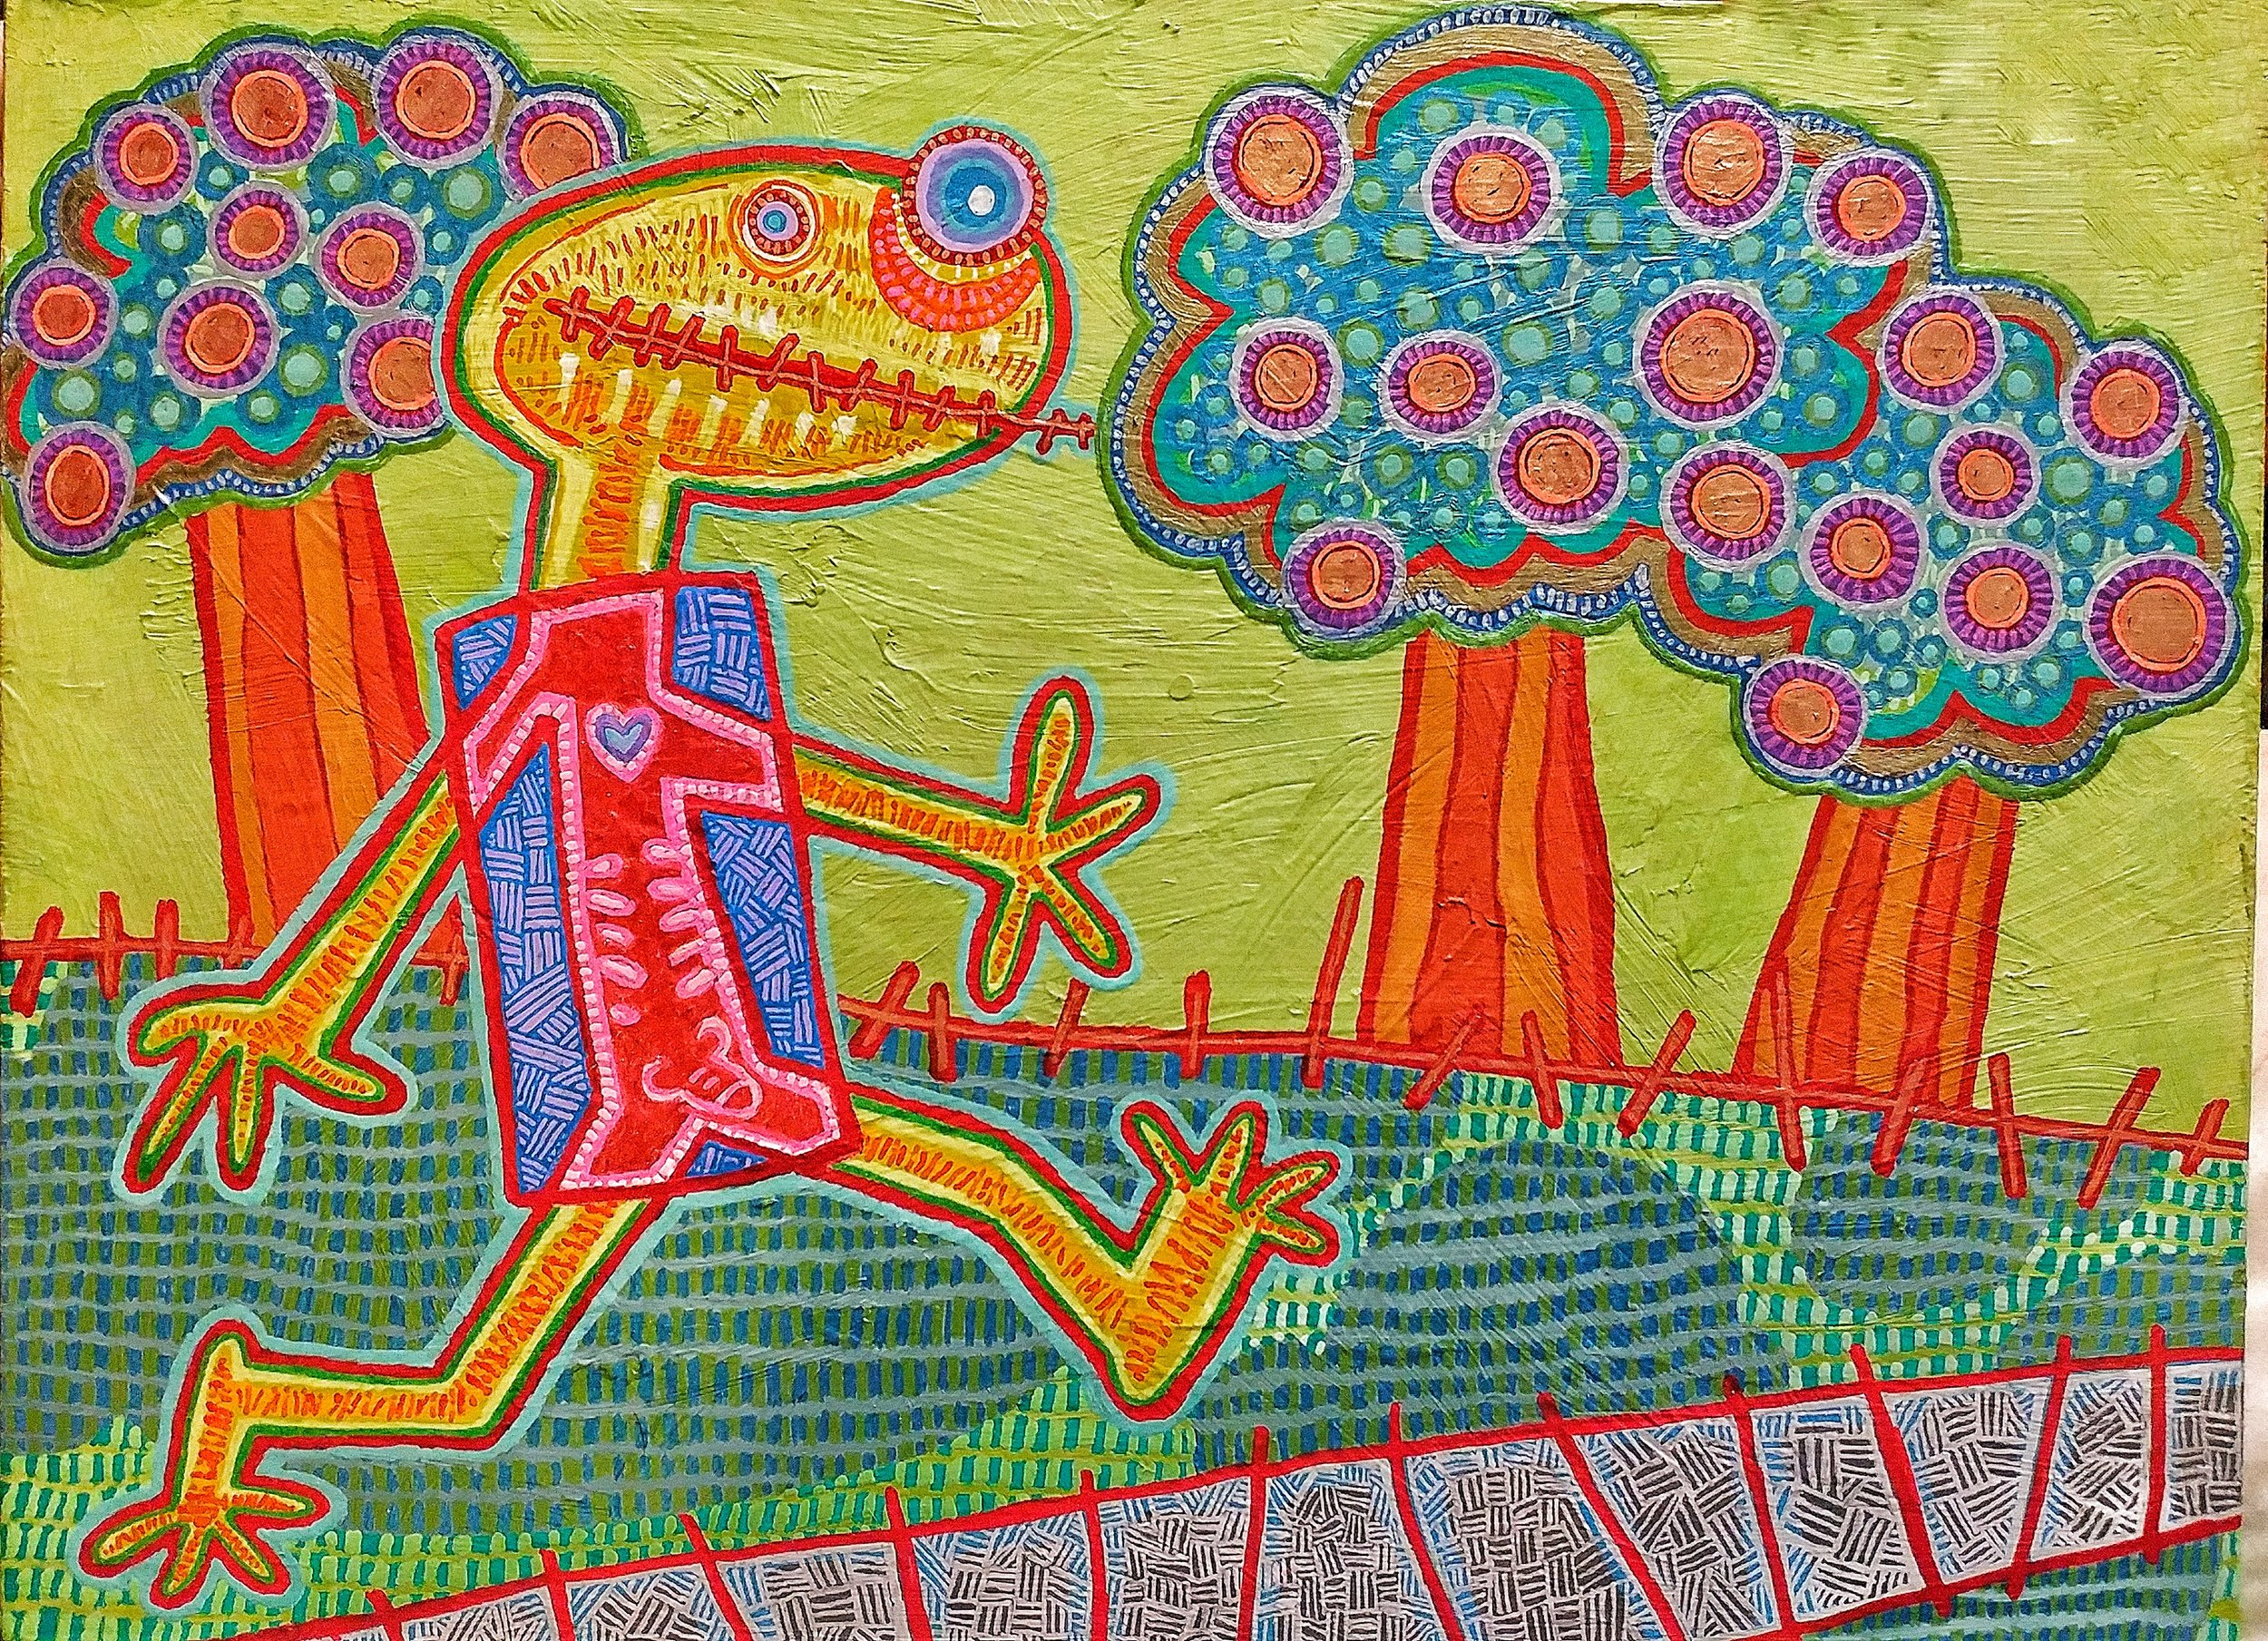 Neked in the Park - 9 x 12 -acrylic on panel 2019.jpeg